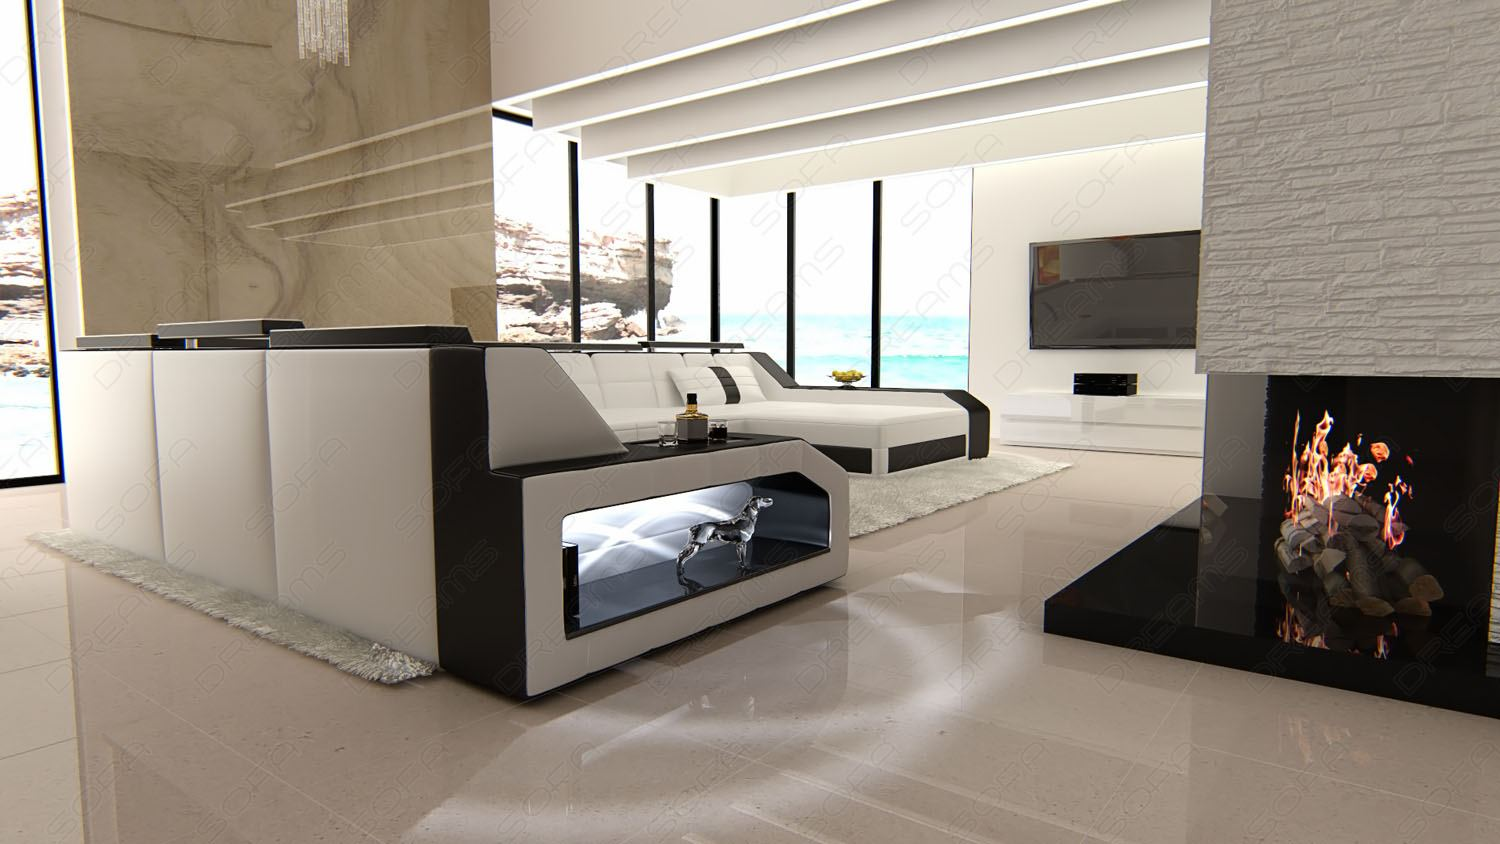 designer interior design matera white black leather. Black Bedroom Furniture Sets. Home Design Ideas